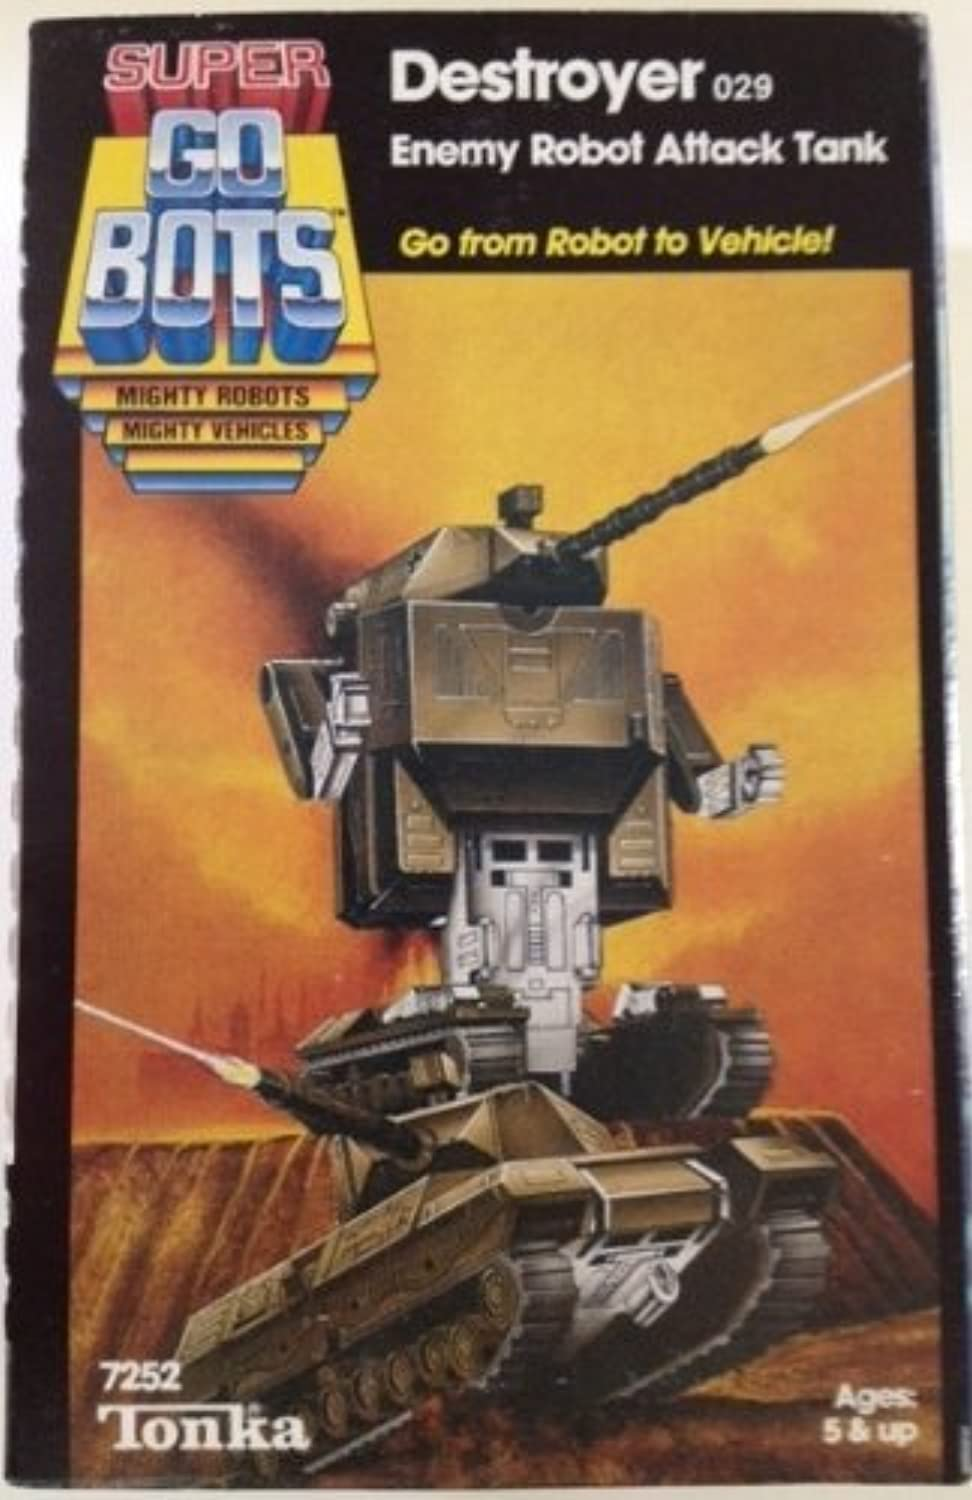 Super GoBots Destroyer Enemy Robot Attack Tank Vintage 1985 Action Figure by Go Bots